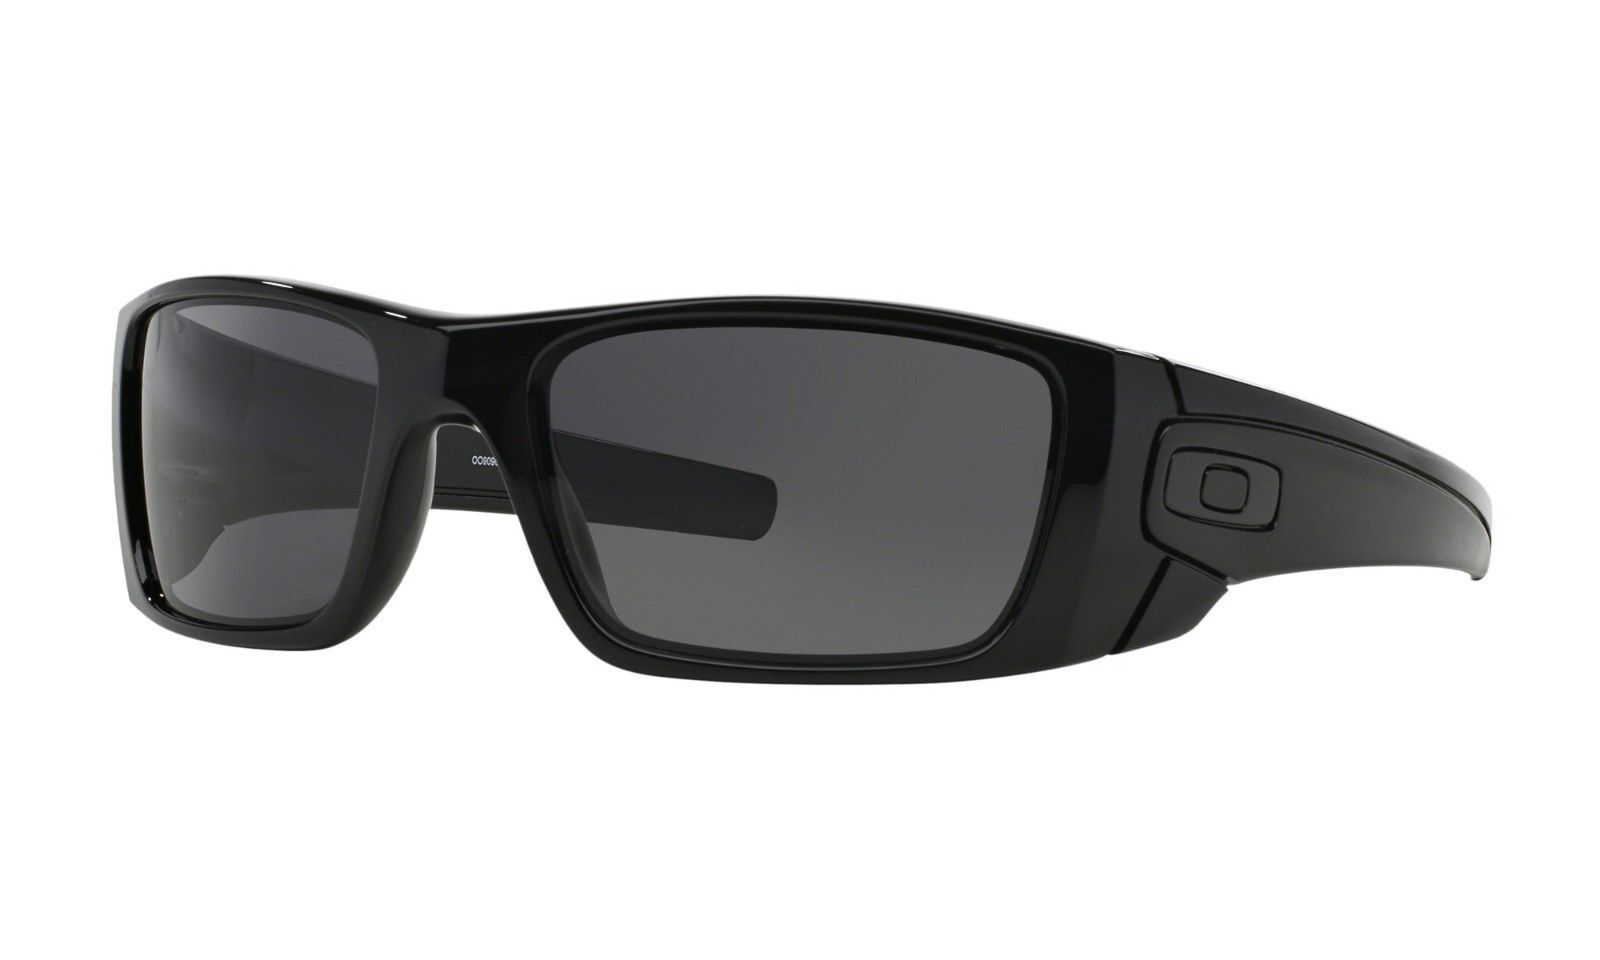 7fedaf4eb163 Oakley Fuel Cell Oo9096 01 Polished Black Warm Grey Lens Mens for ...